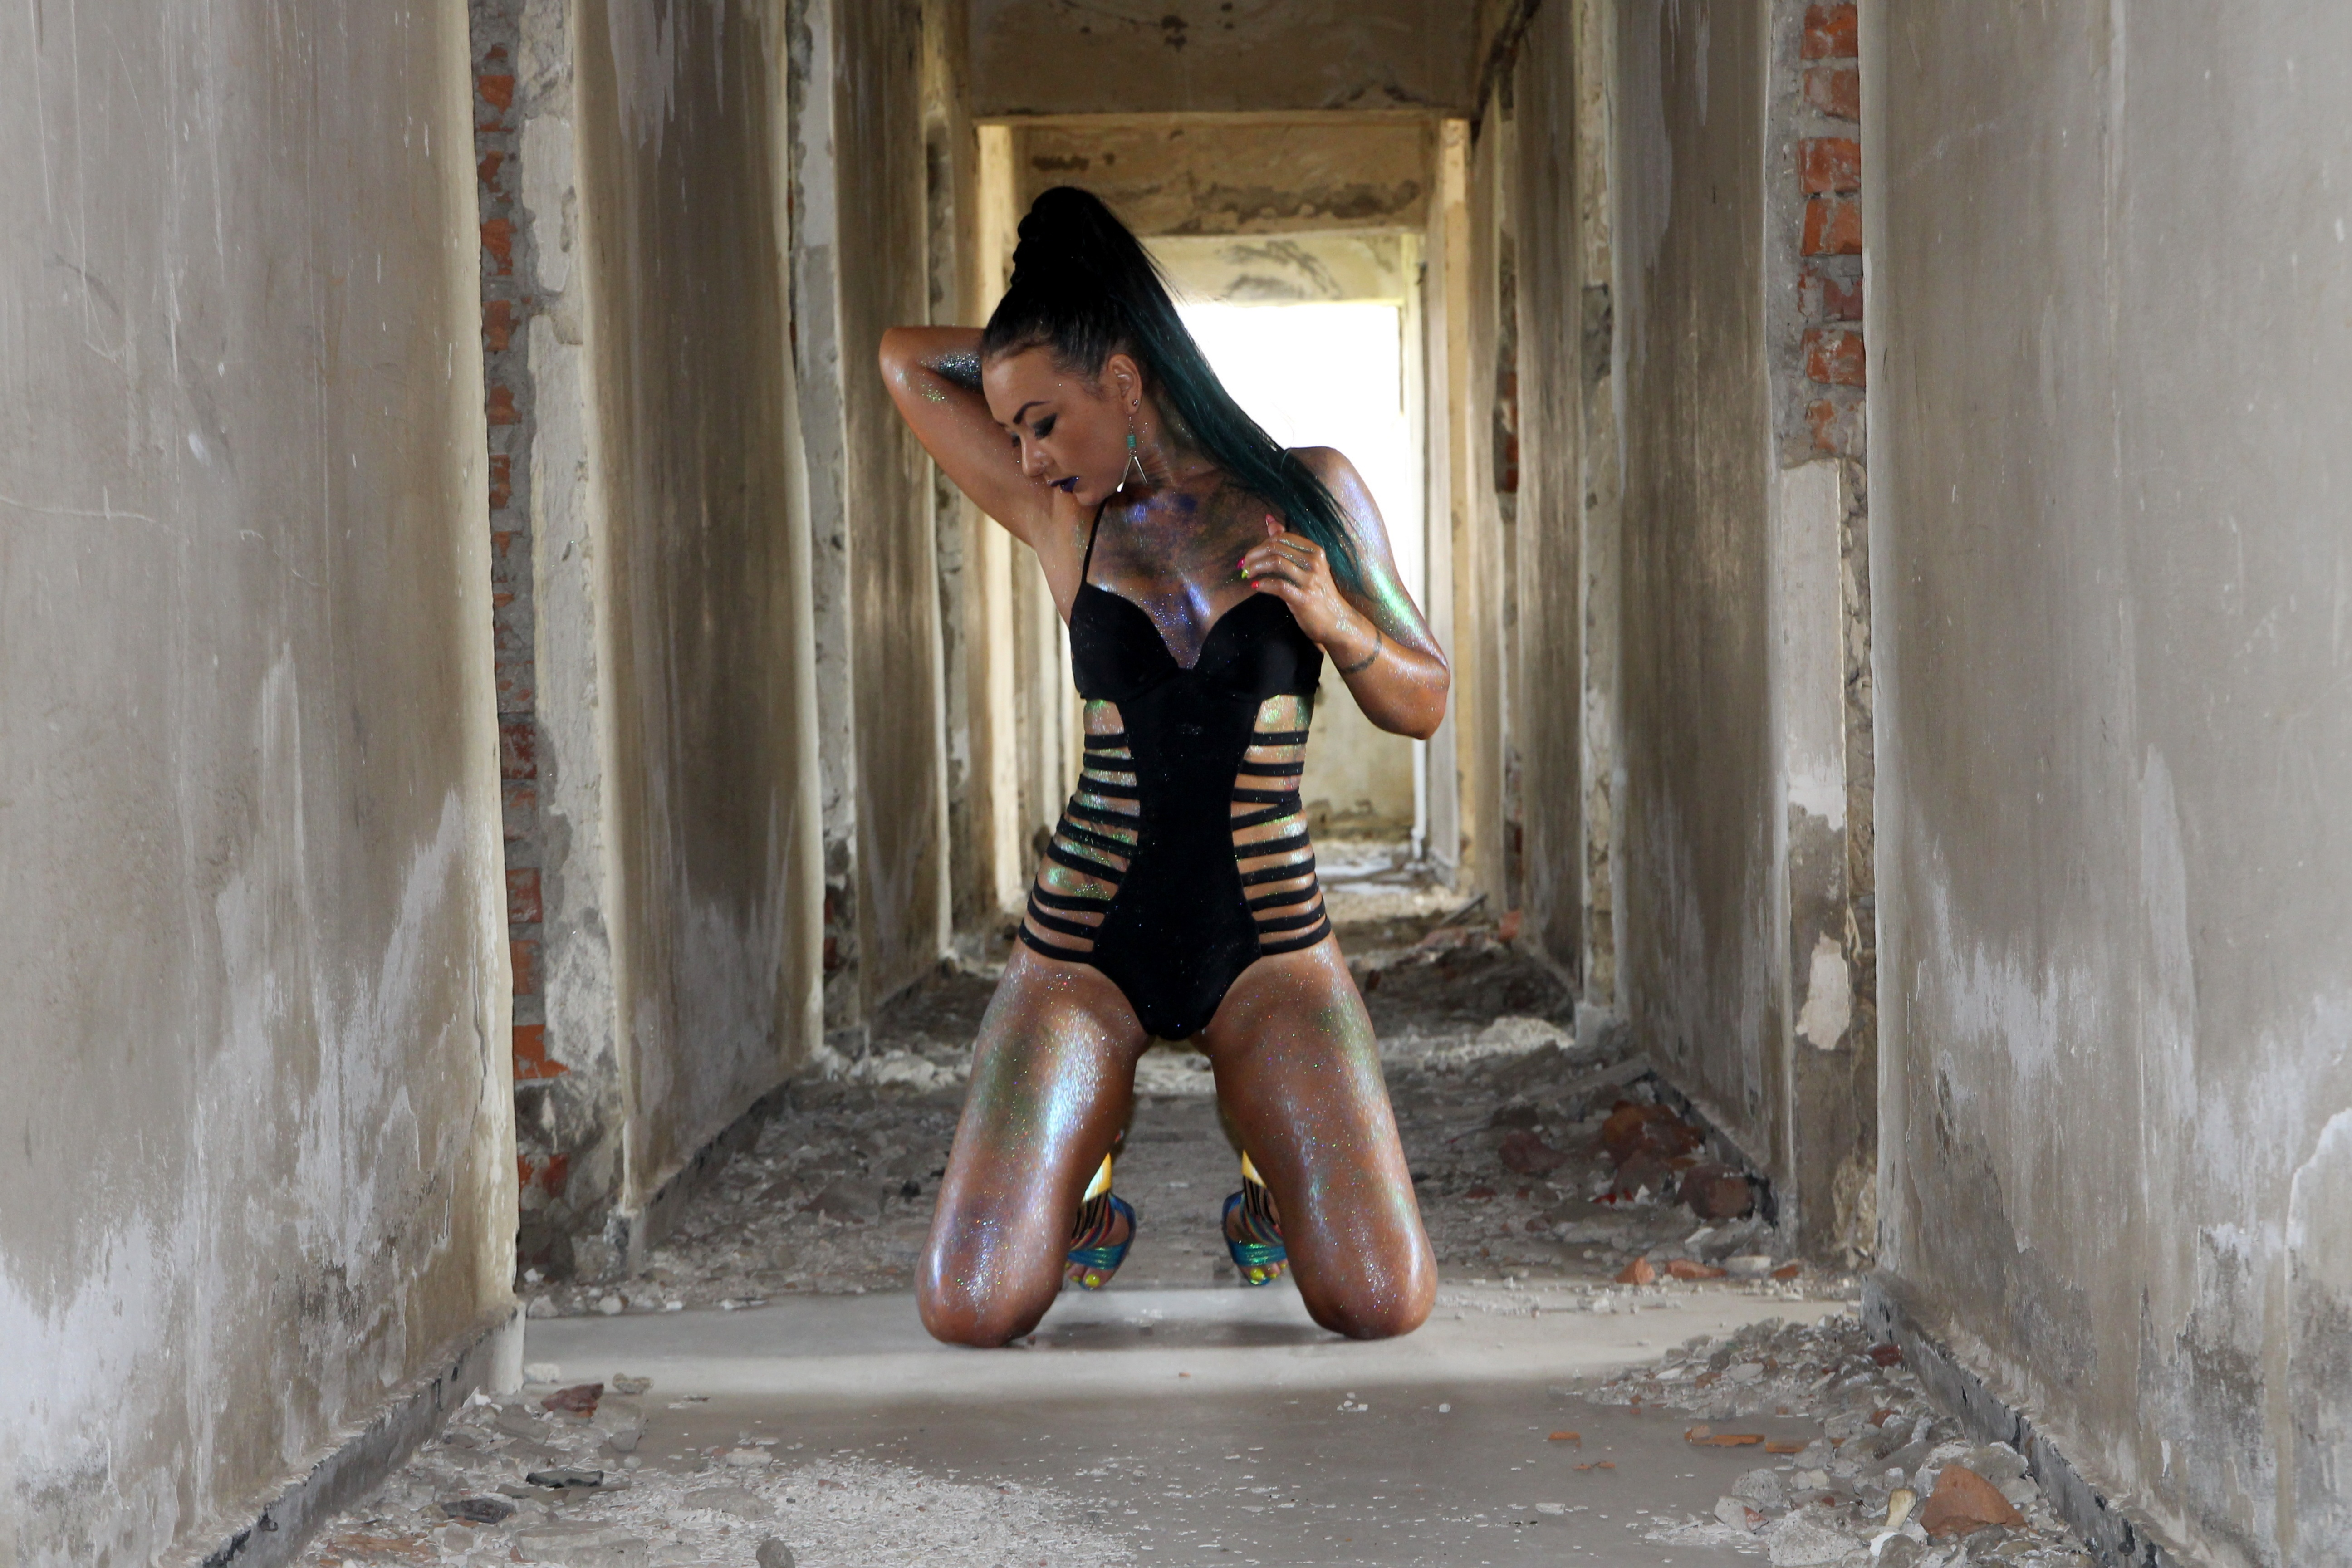 Beauty At A Photo Shoot In An Abandoned Building Free Image